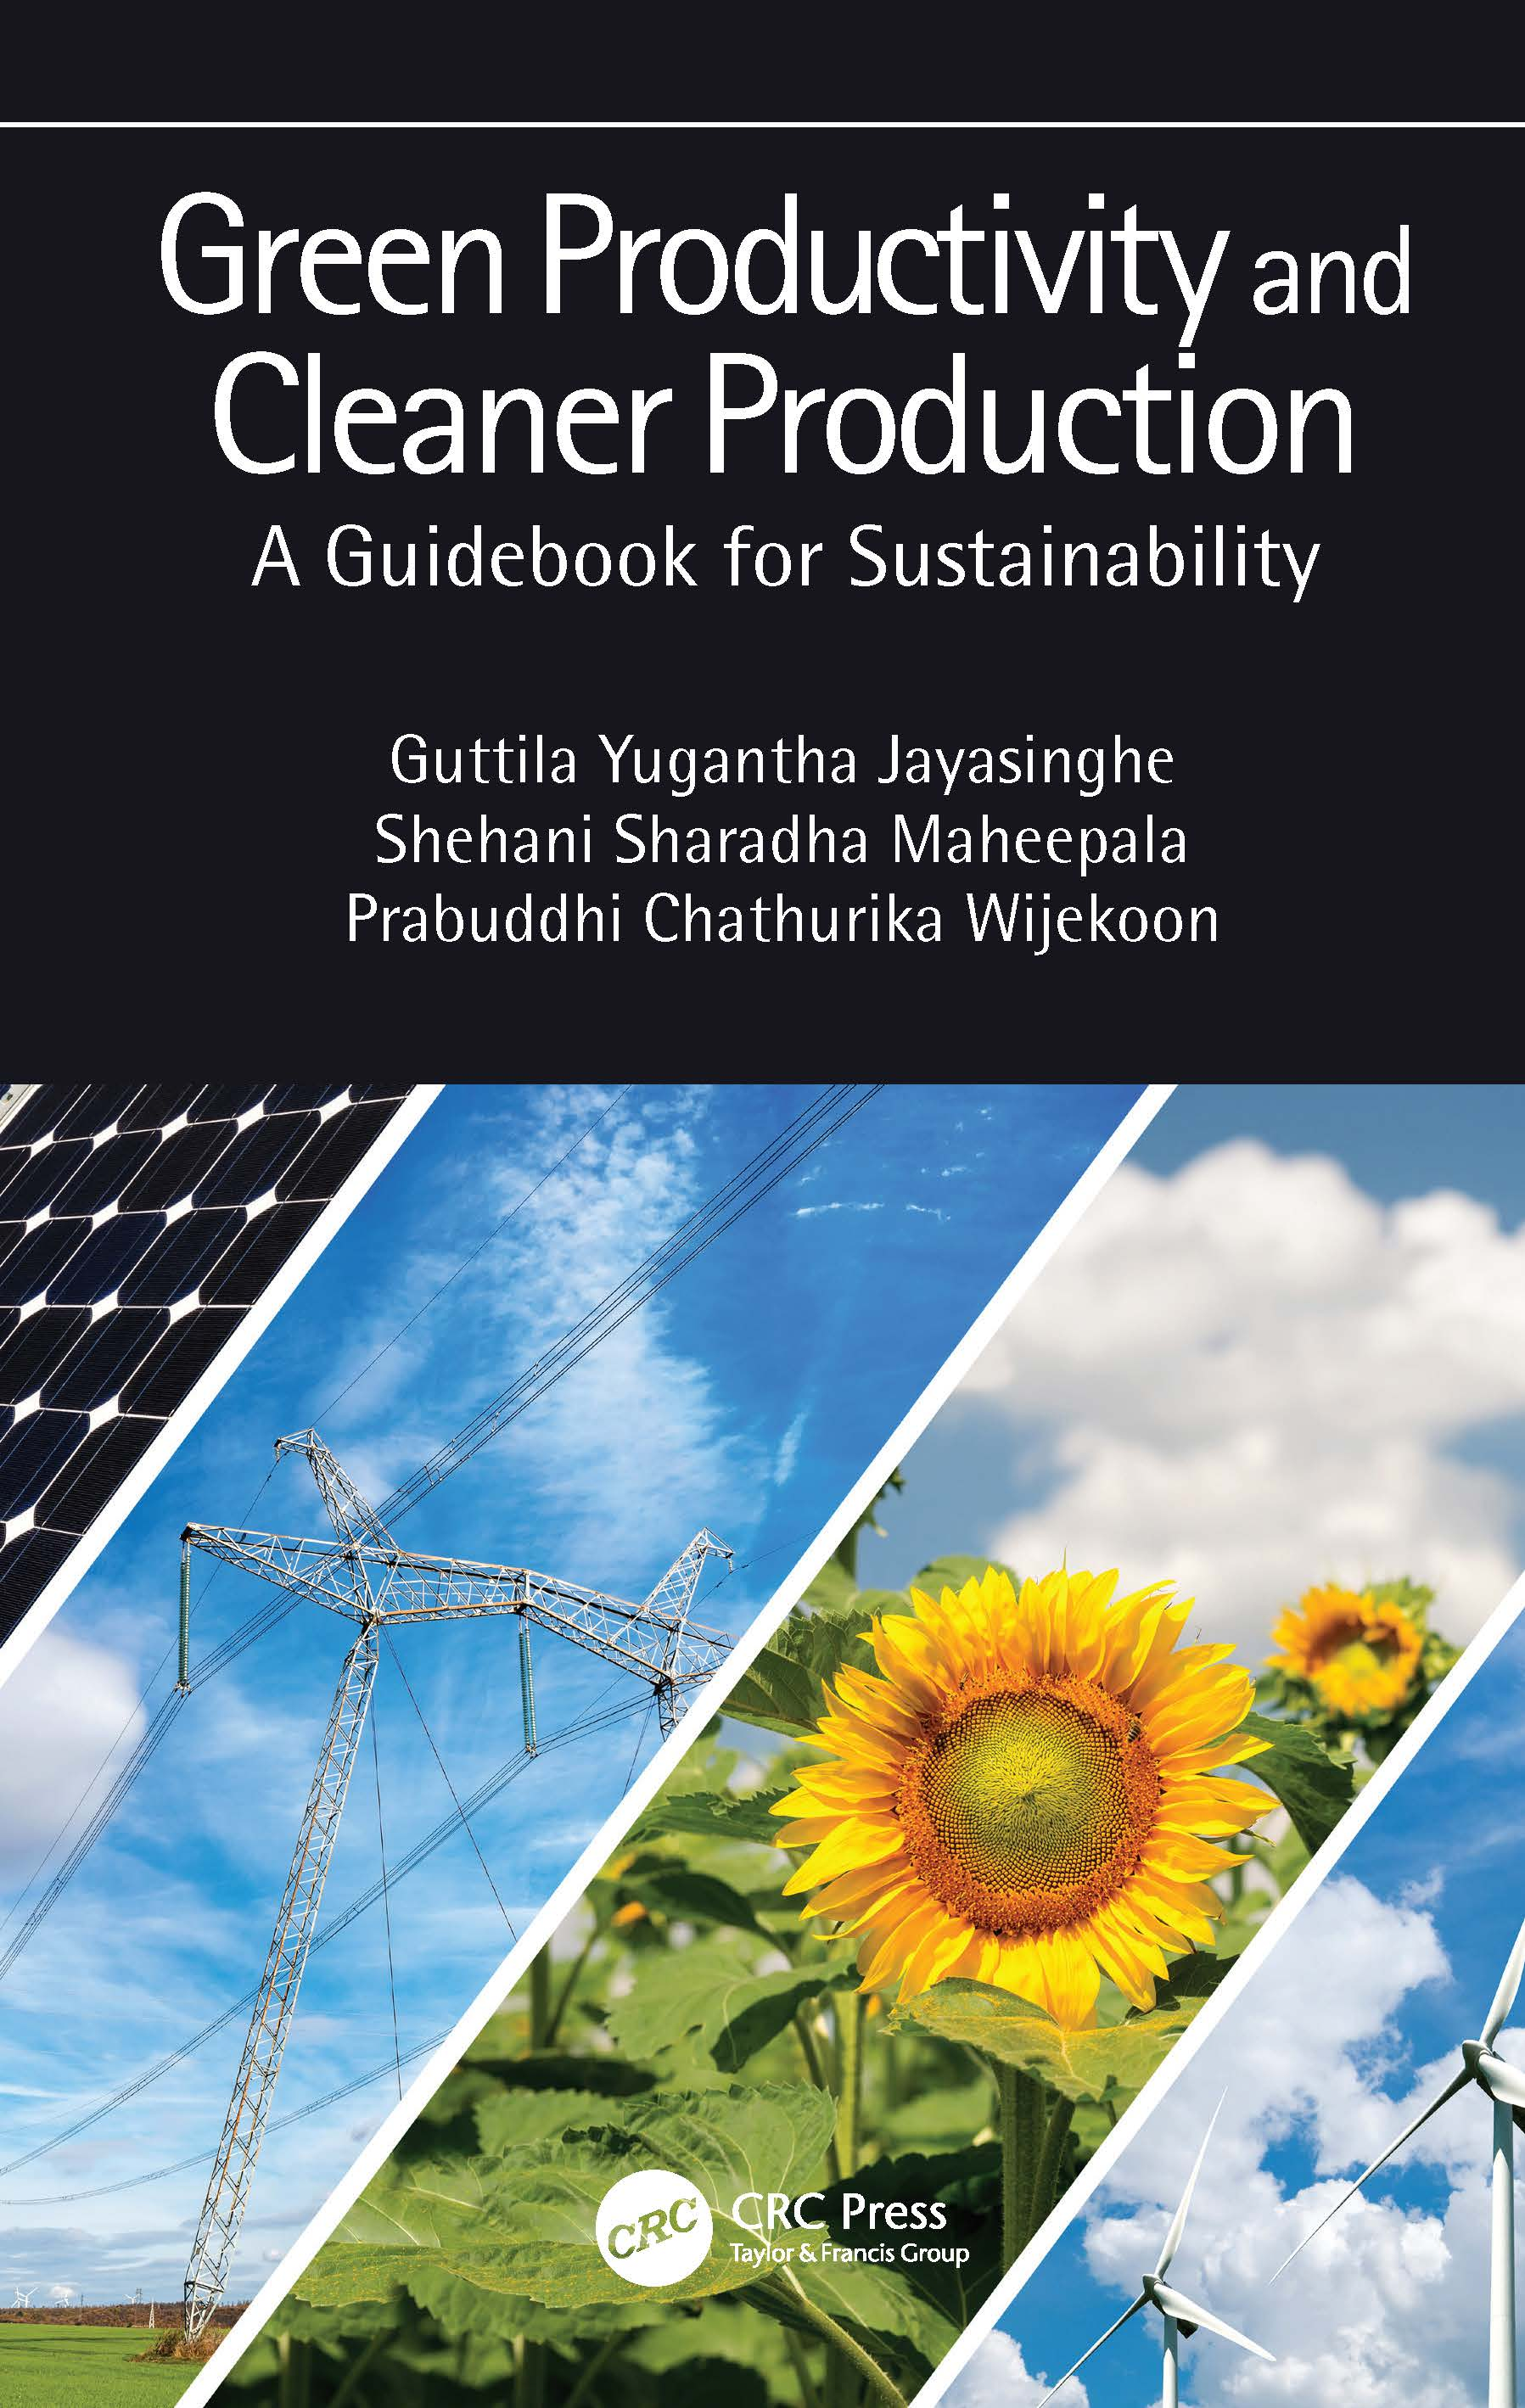 Green Productivity and Cleaner Production: A Guidebook for Sustainability book cover